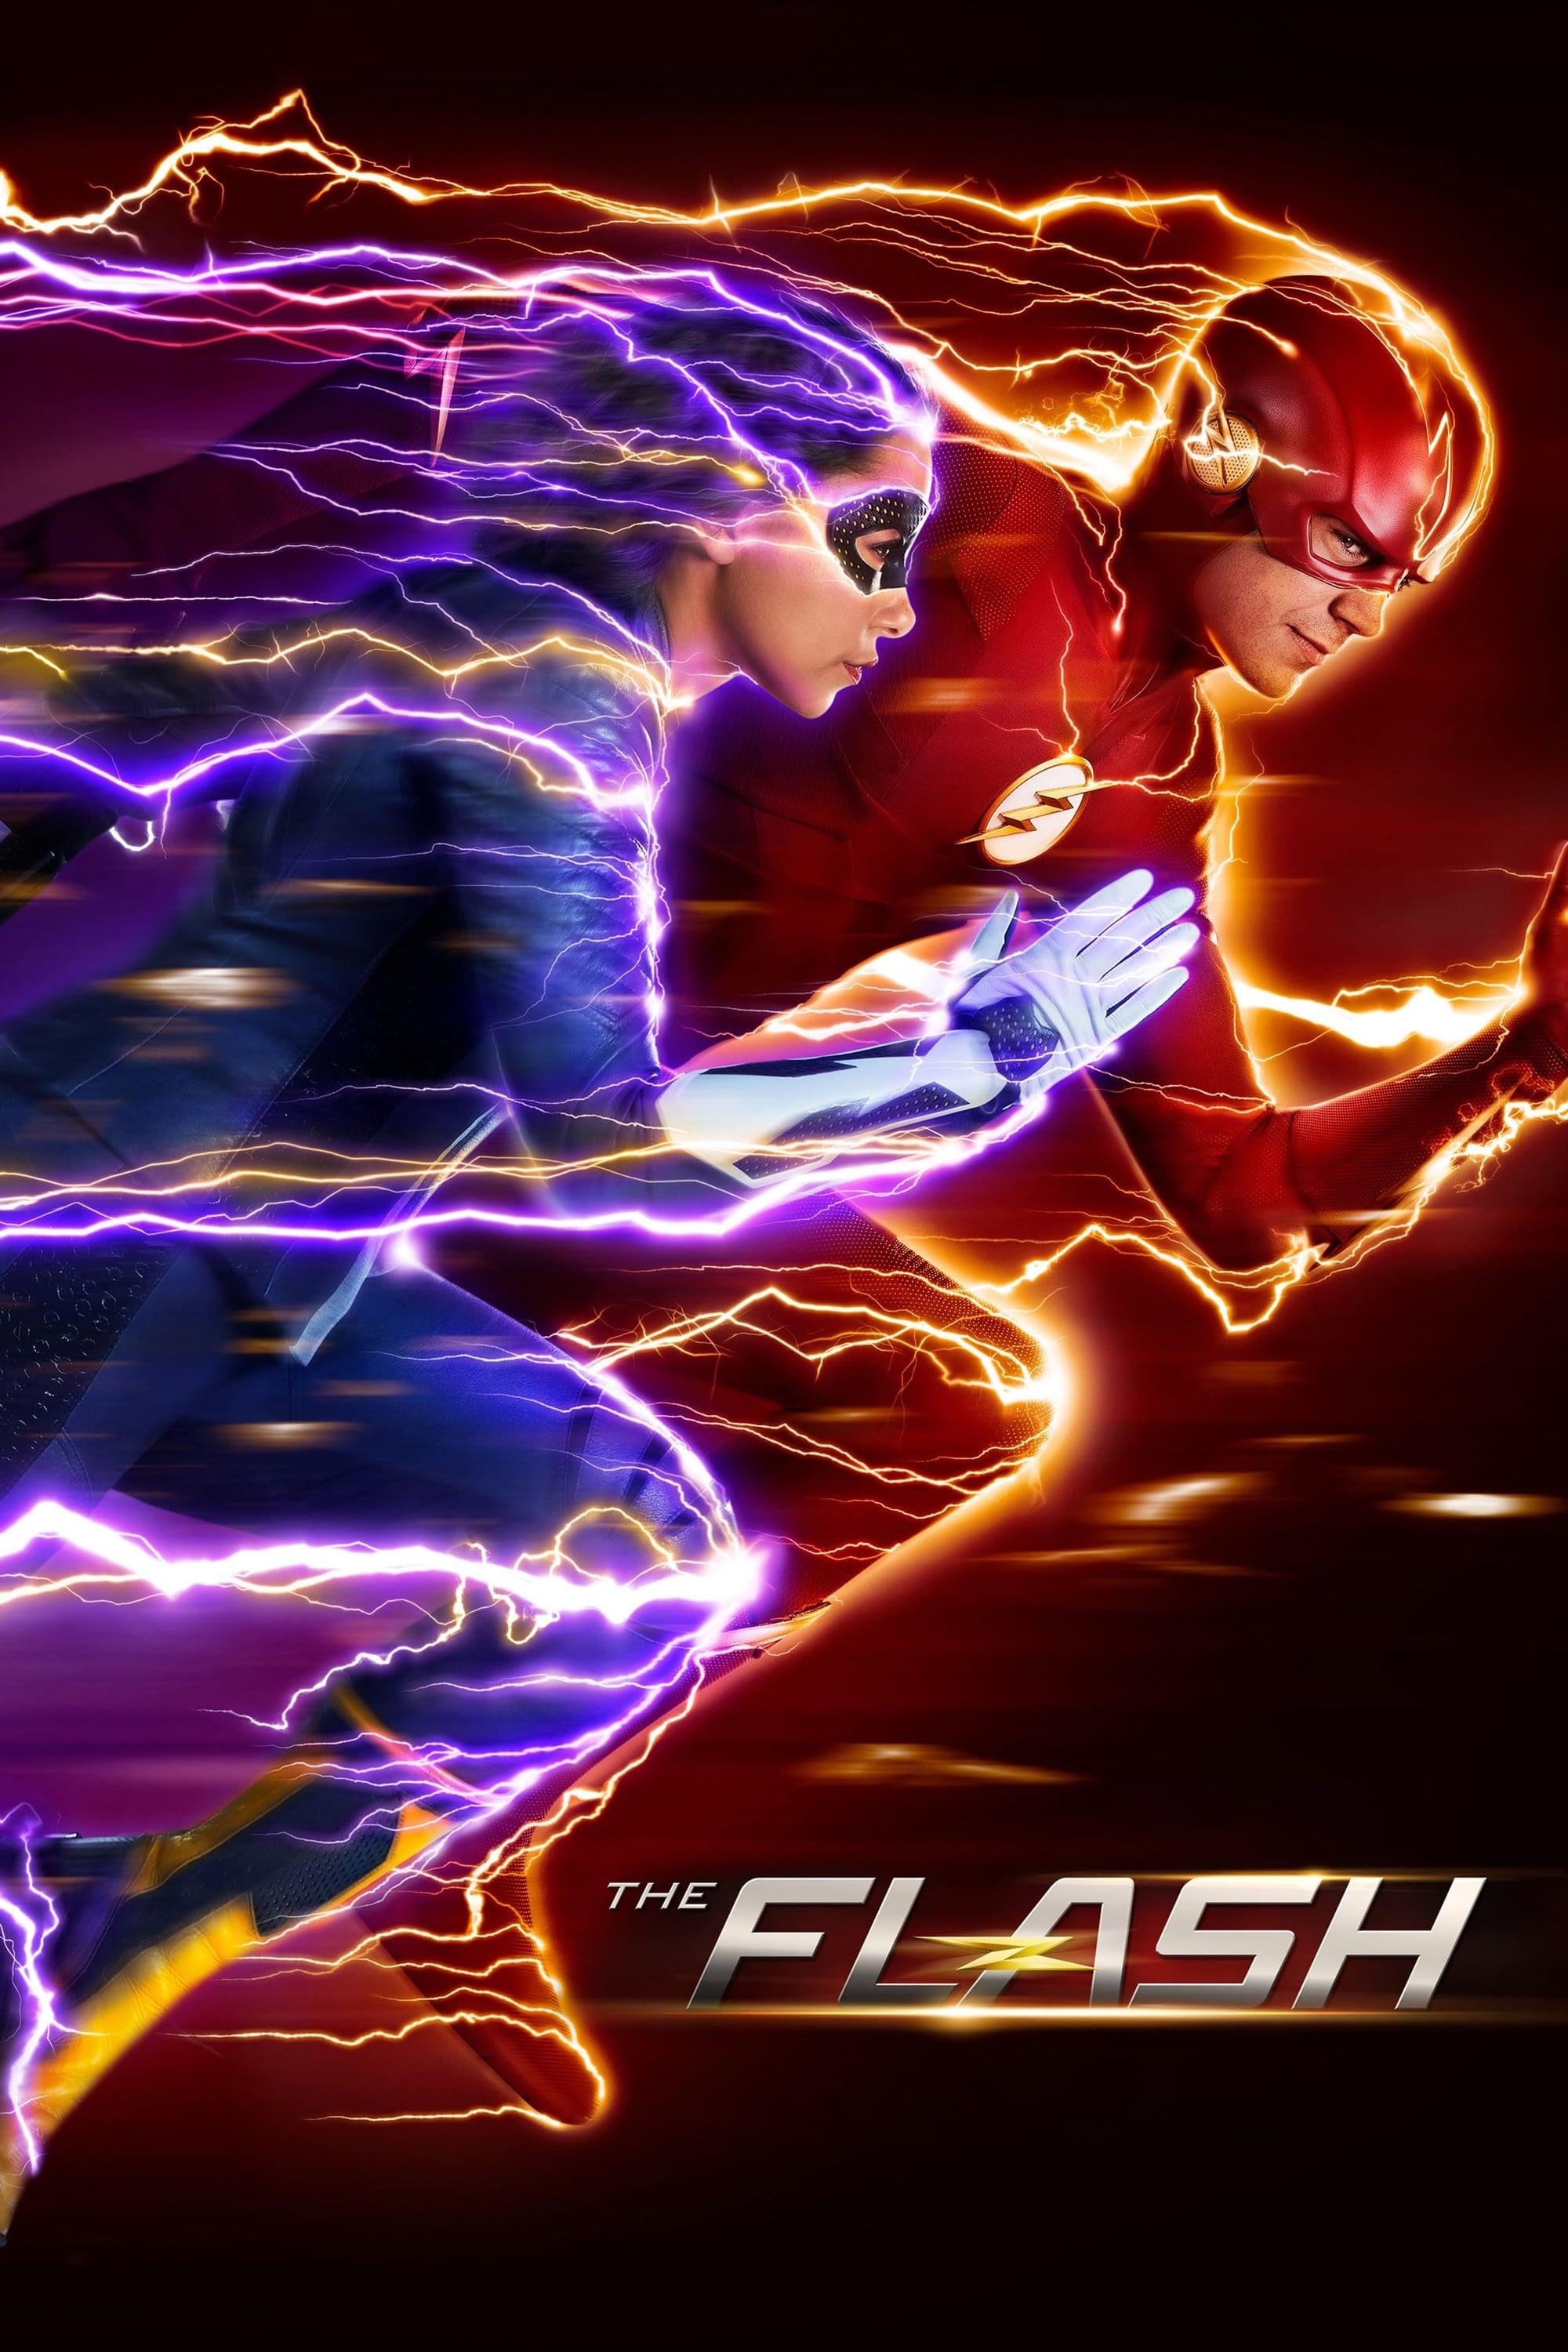 image for The Flash